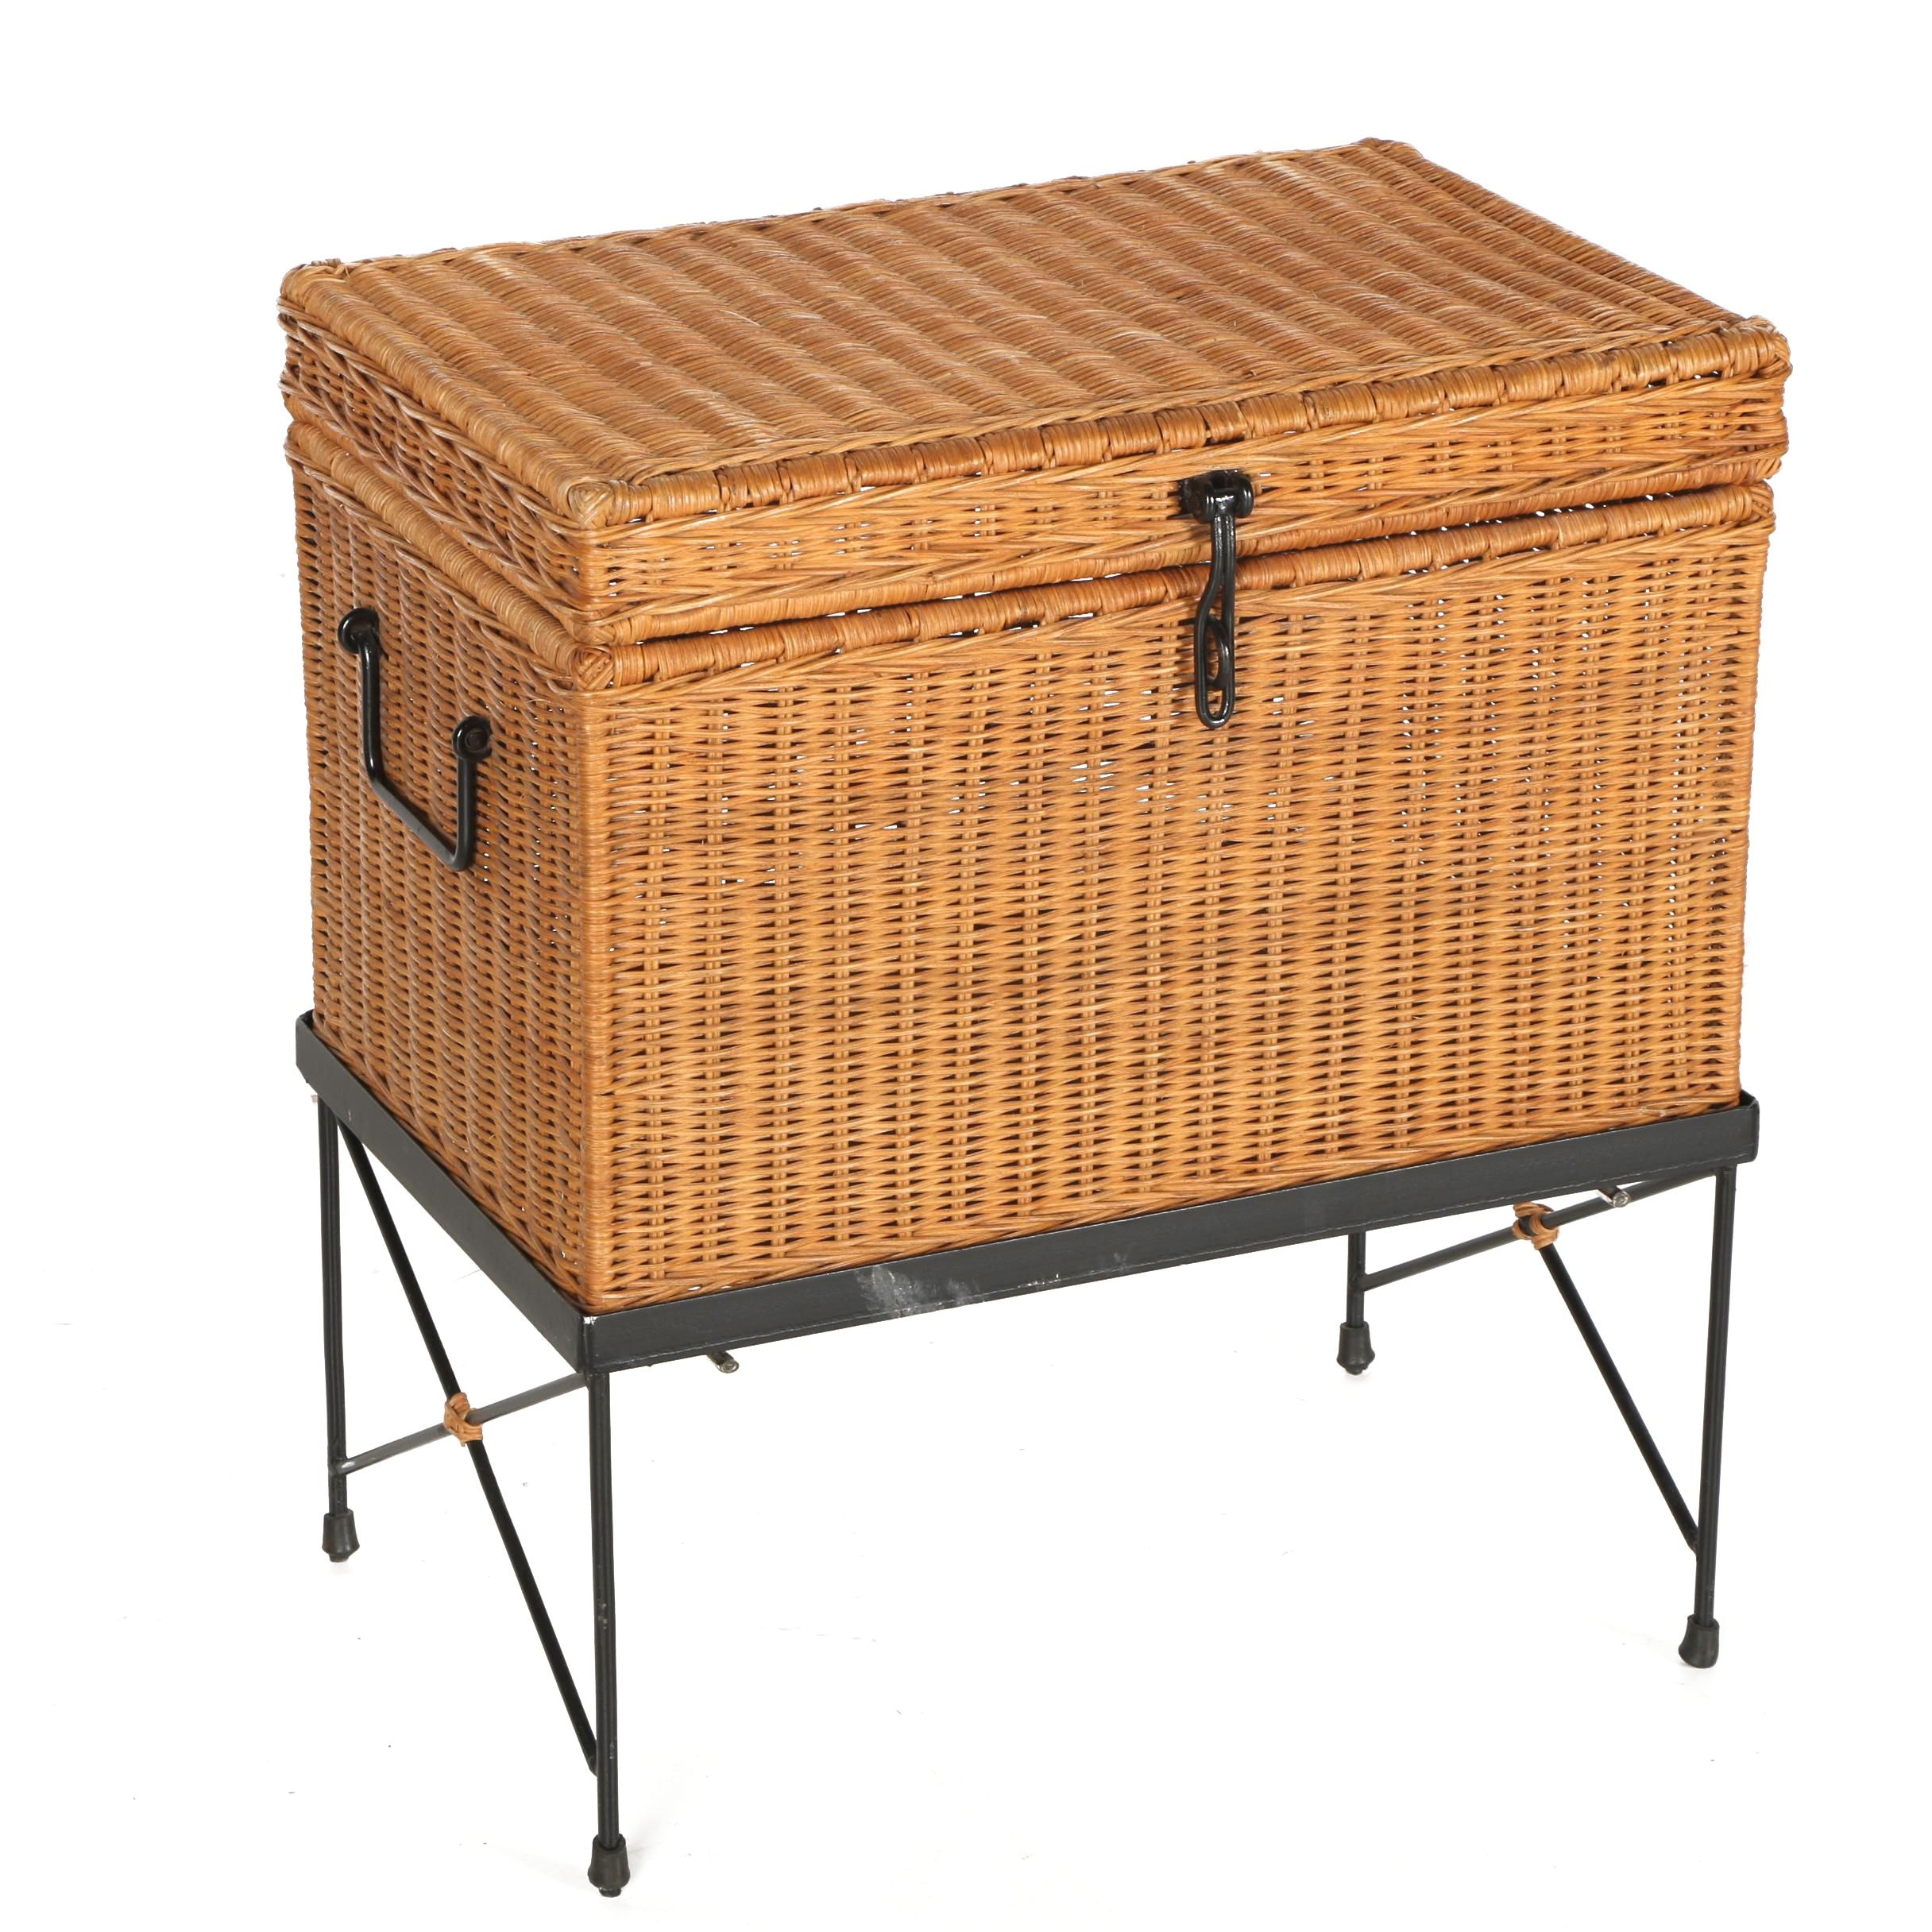 Wicker Storage Box on Stand